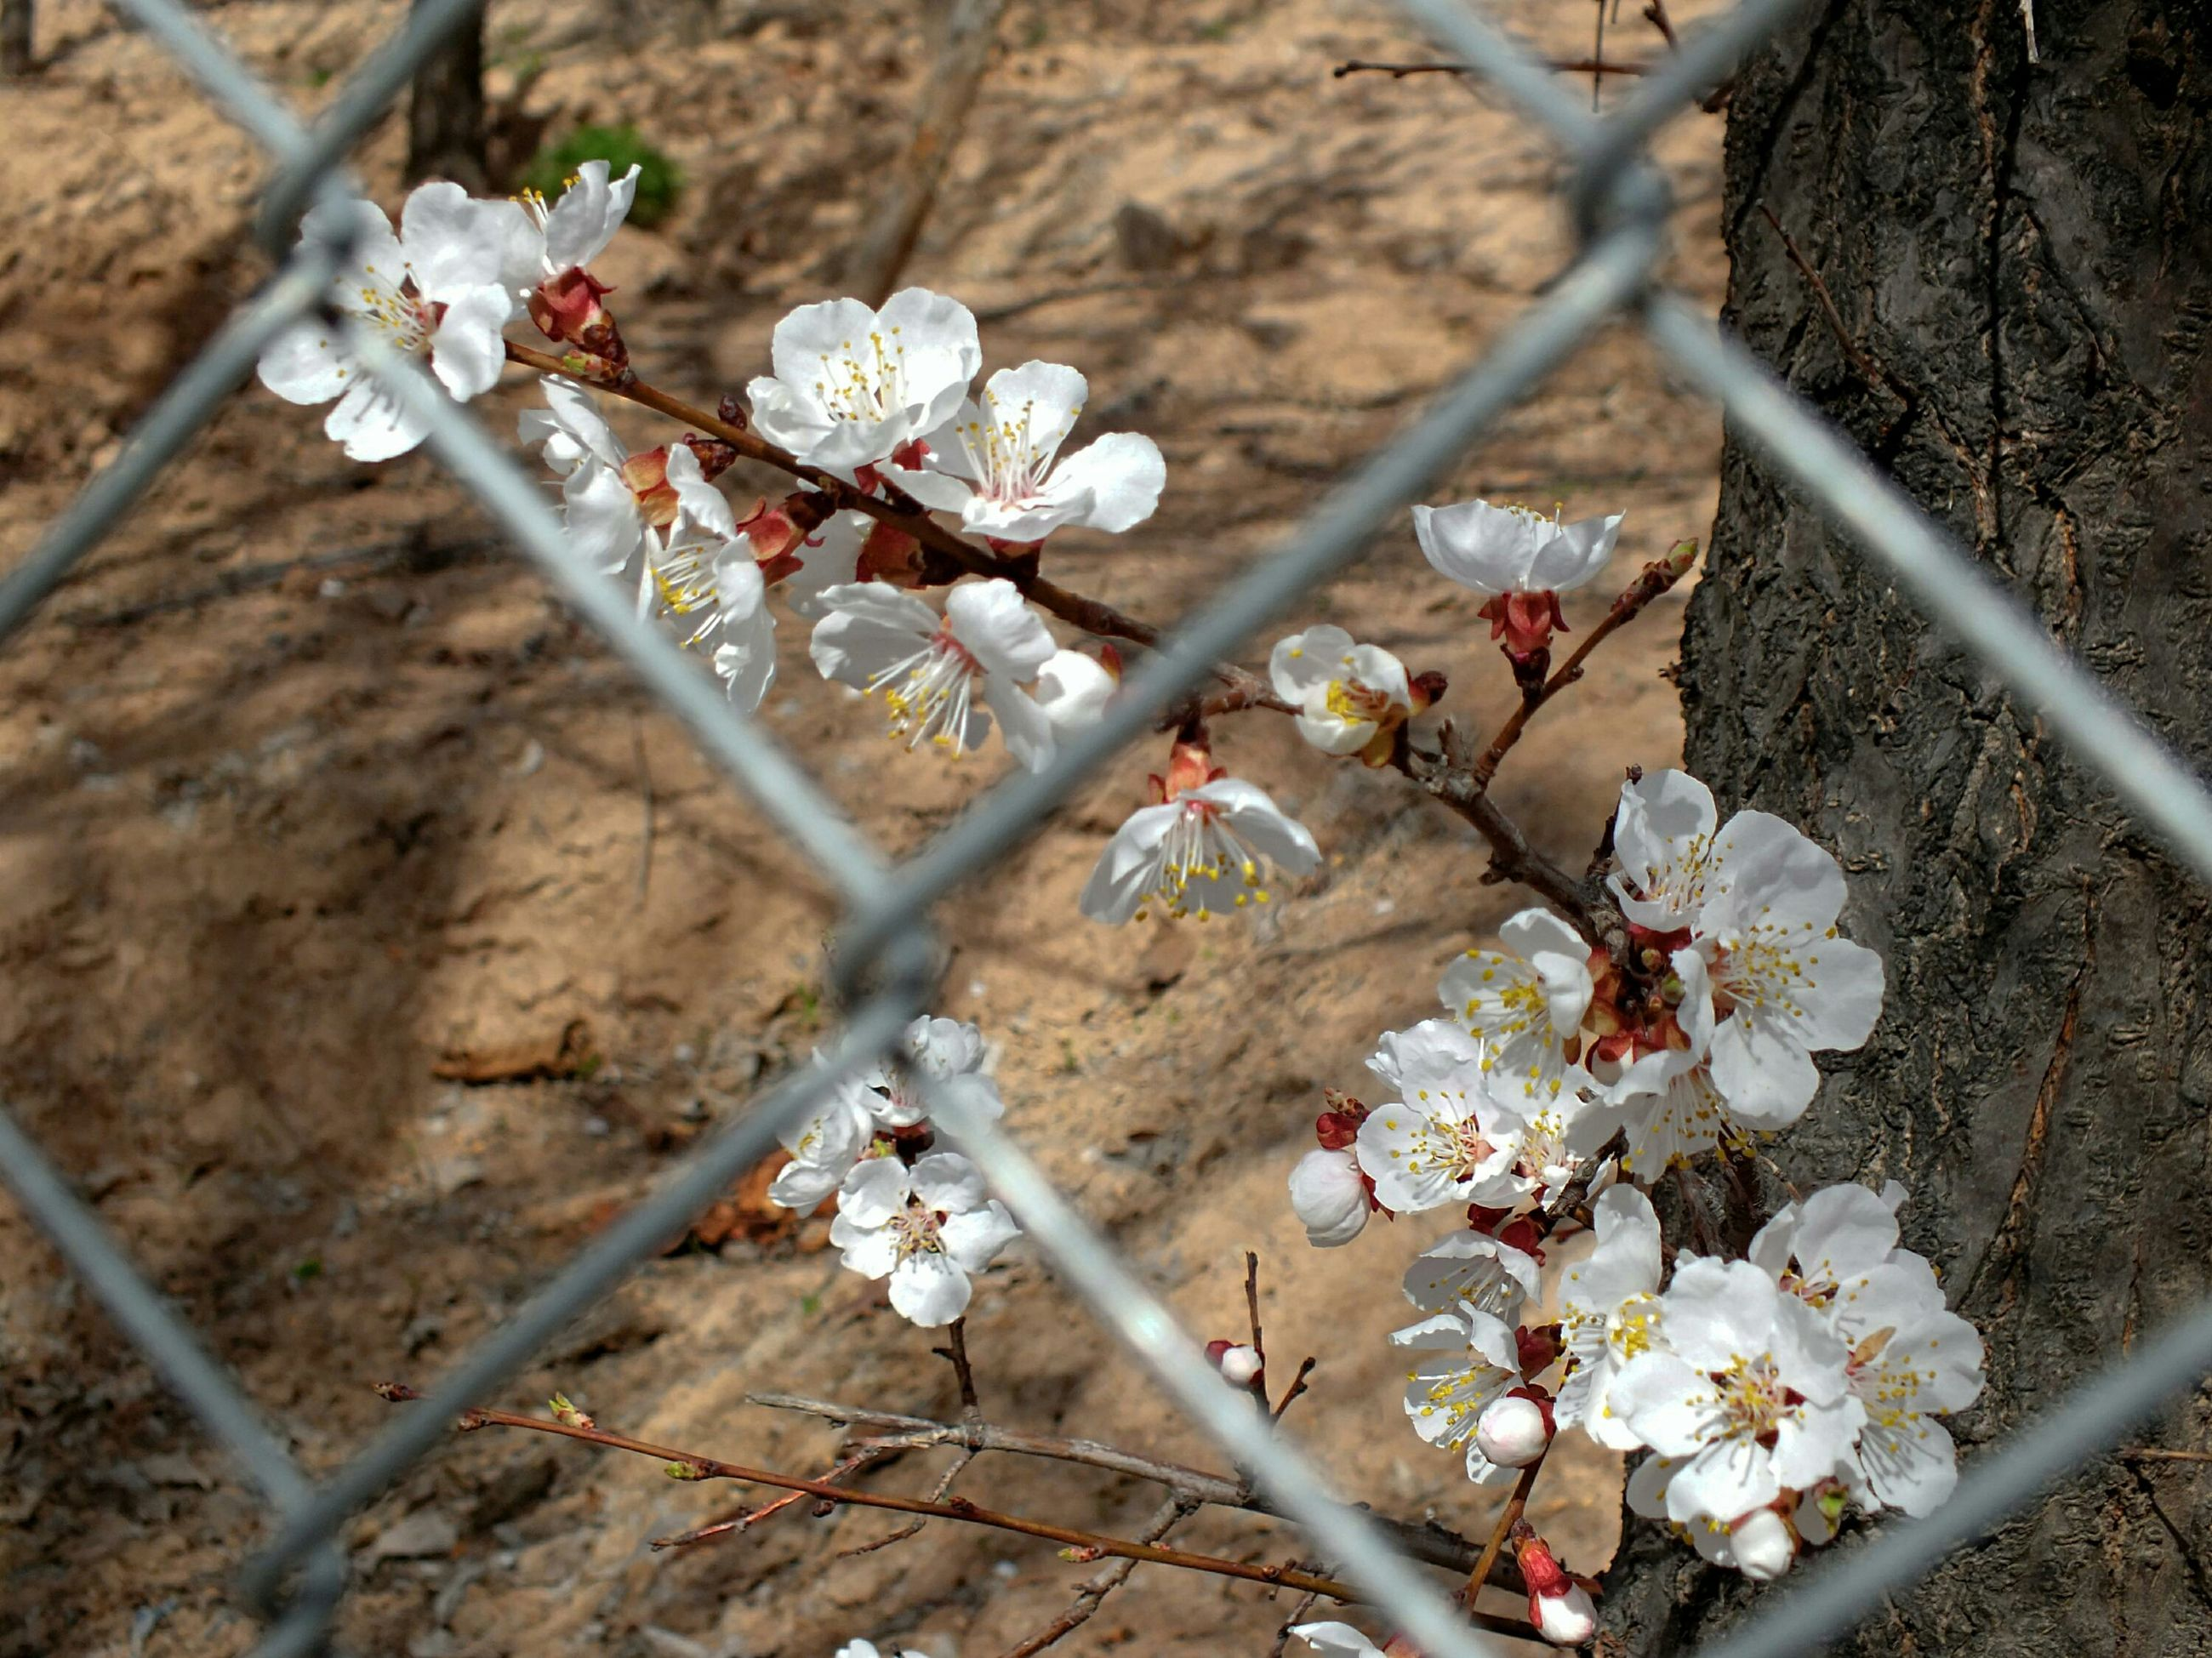 flower, fragility, freshness, white color, petal, growth, blossom, nature, cherry blossom, blooming, tree, branch, beauty in nature, cherry tree, high angle view, in bloom, flower head, day, springtime, plant